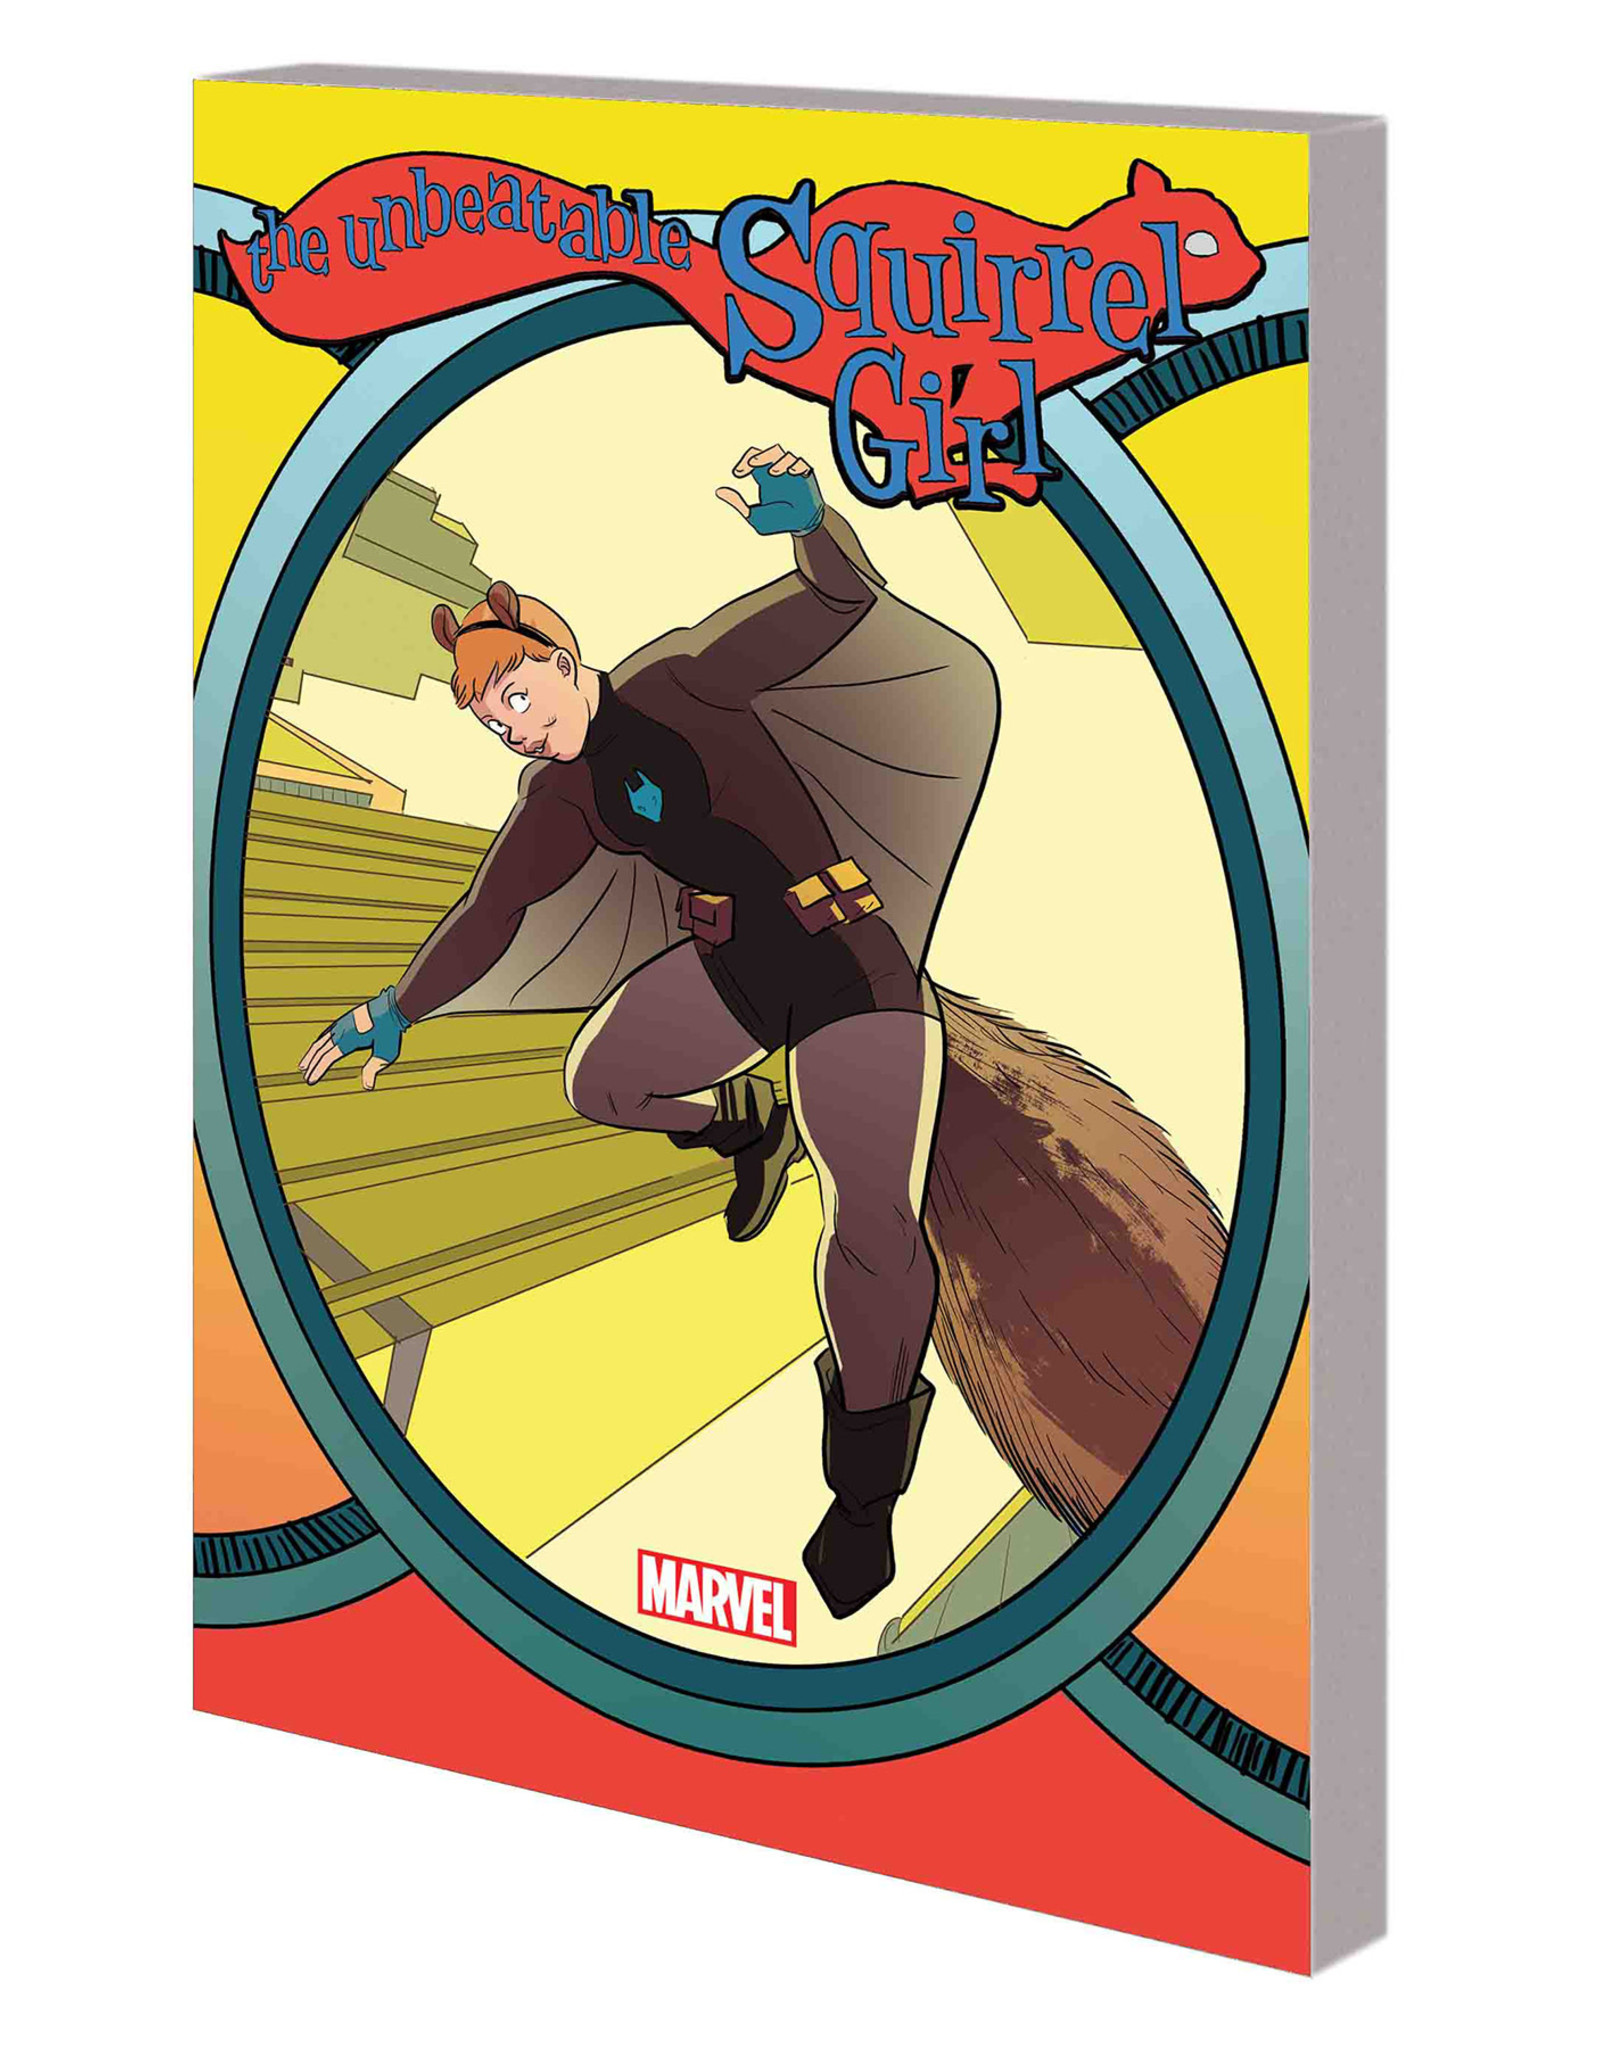 MARVEL COMICS UNBEATABLE SQUIRREL GIRL TP VOL 06 WHO RUN THE WORLD